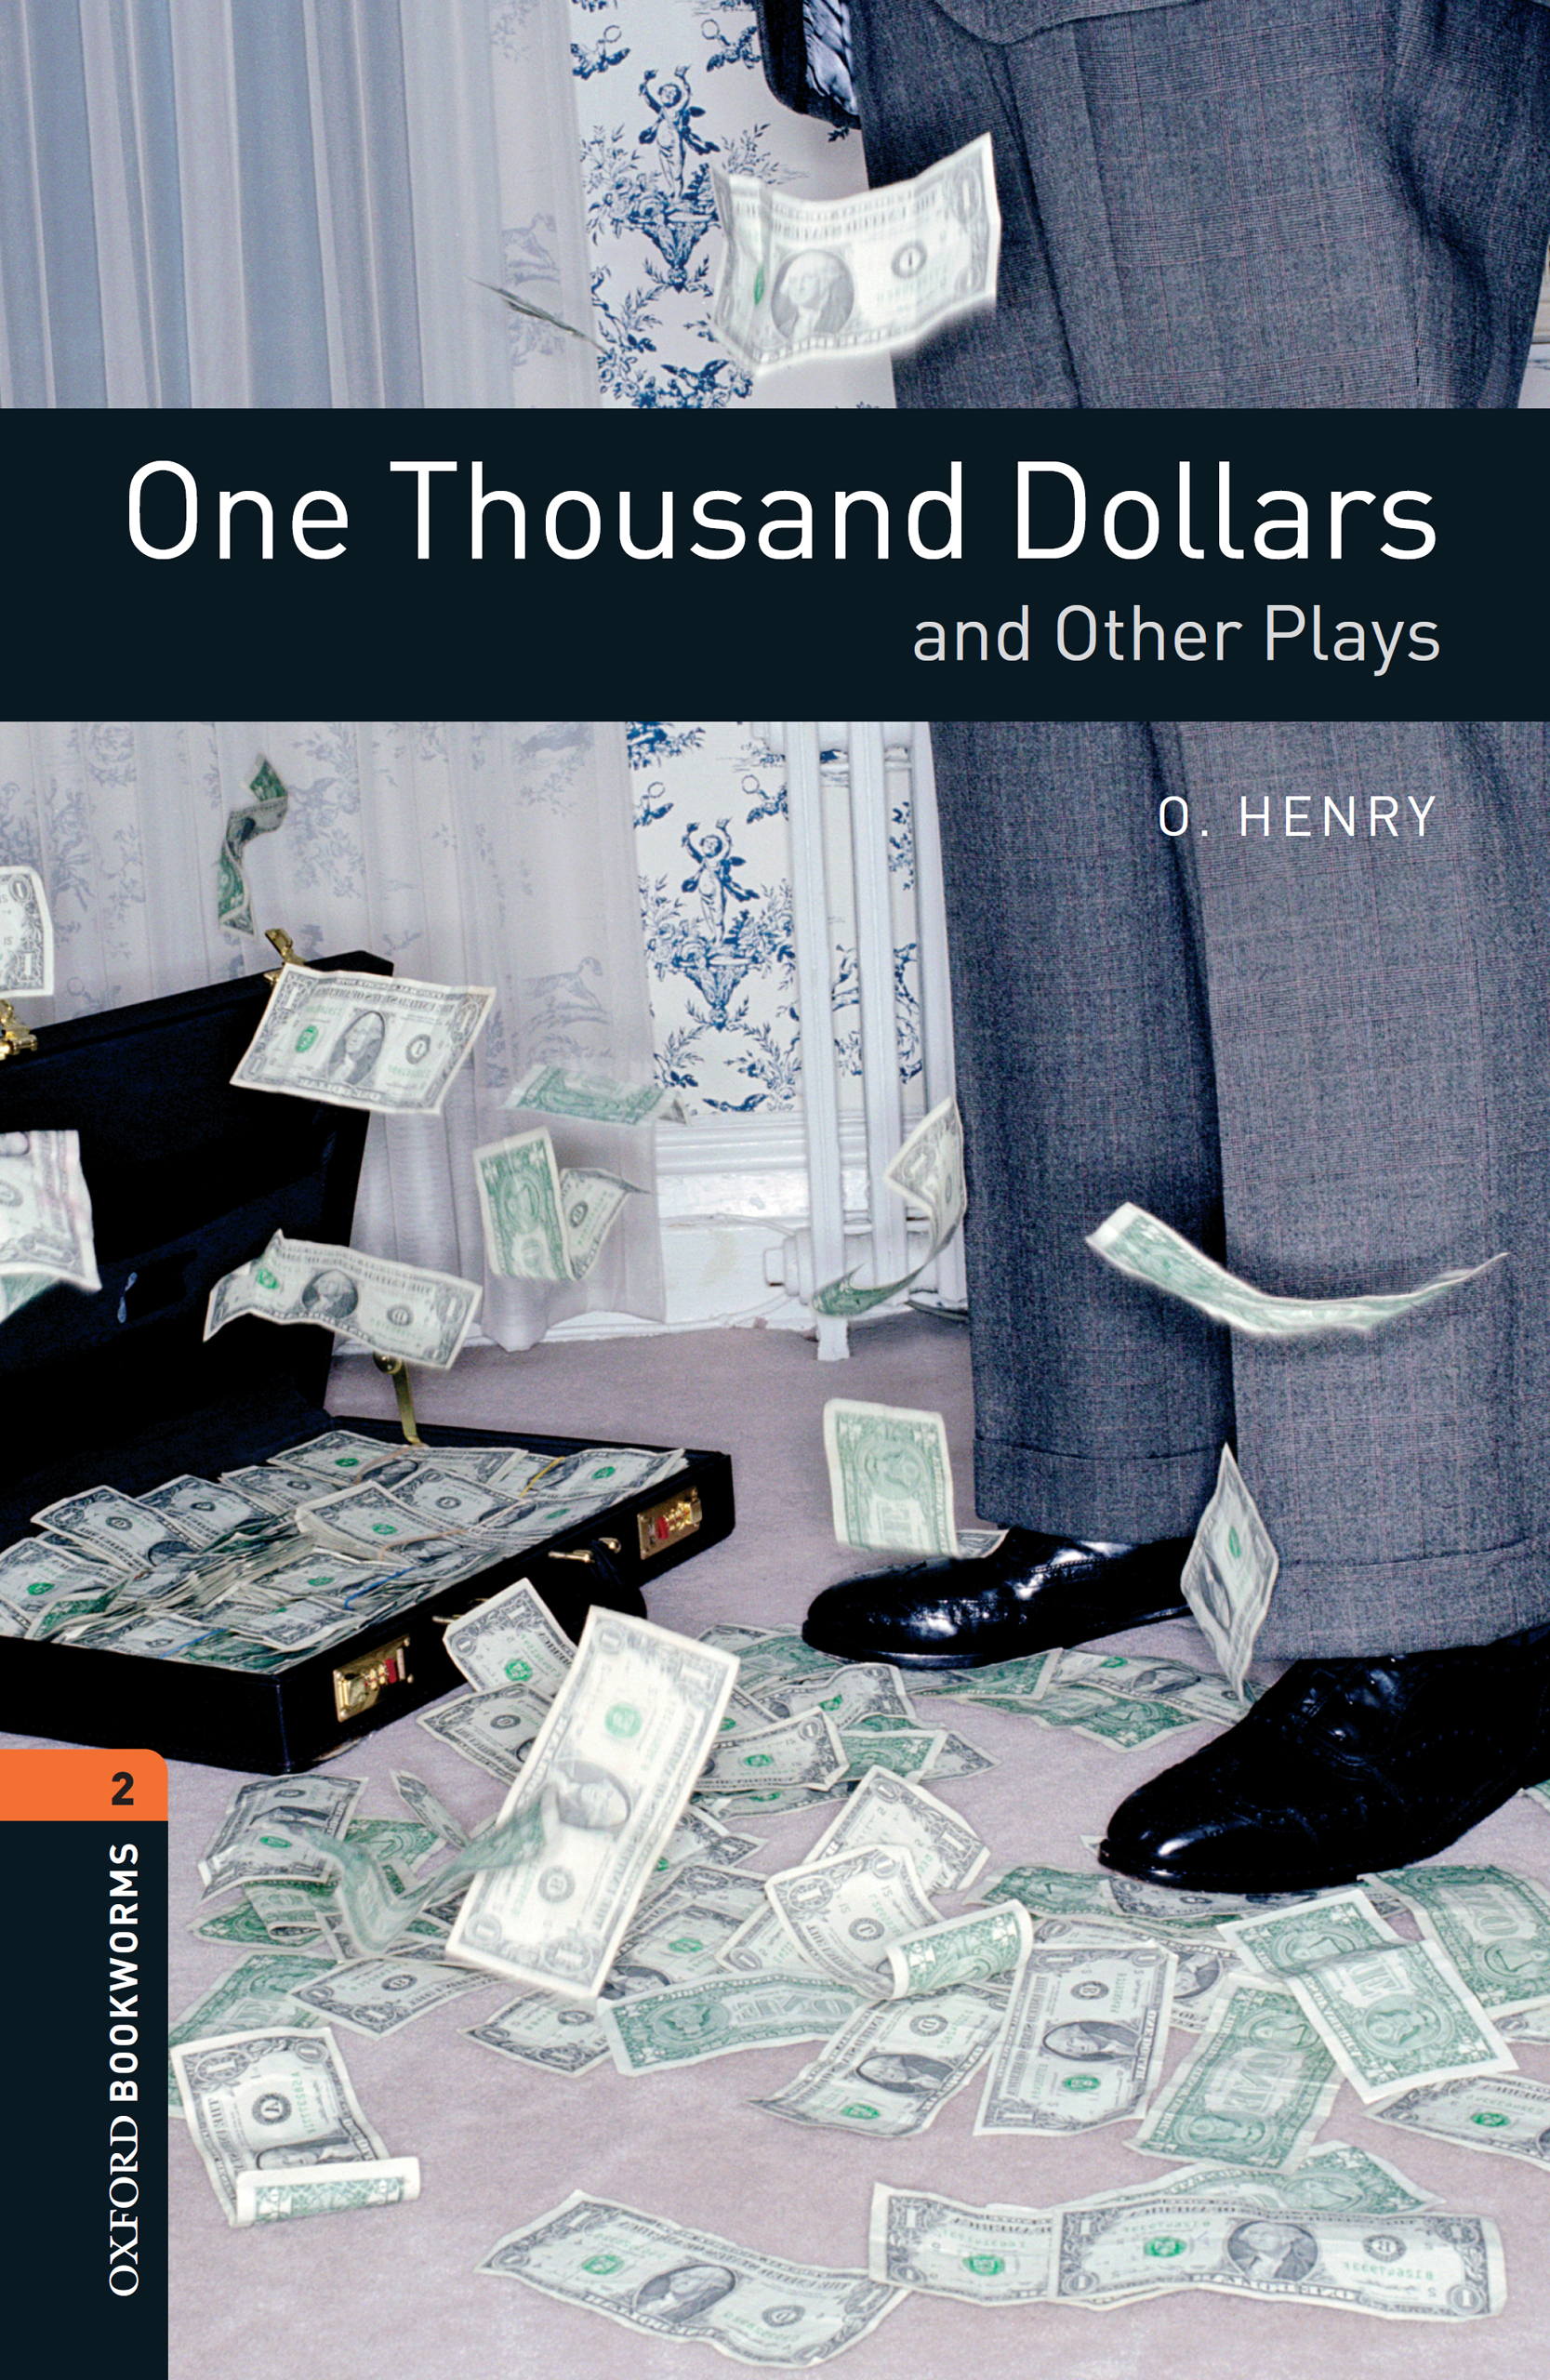 цена О. Генри One Thousand Dollars and Other Plays онлайн в 2017 году